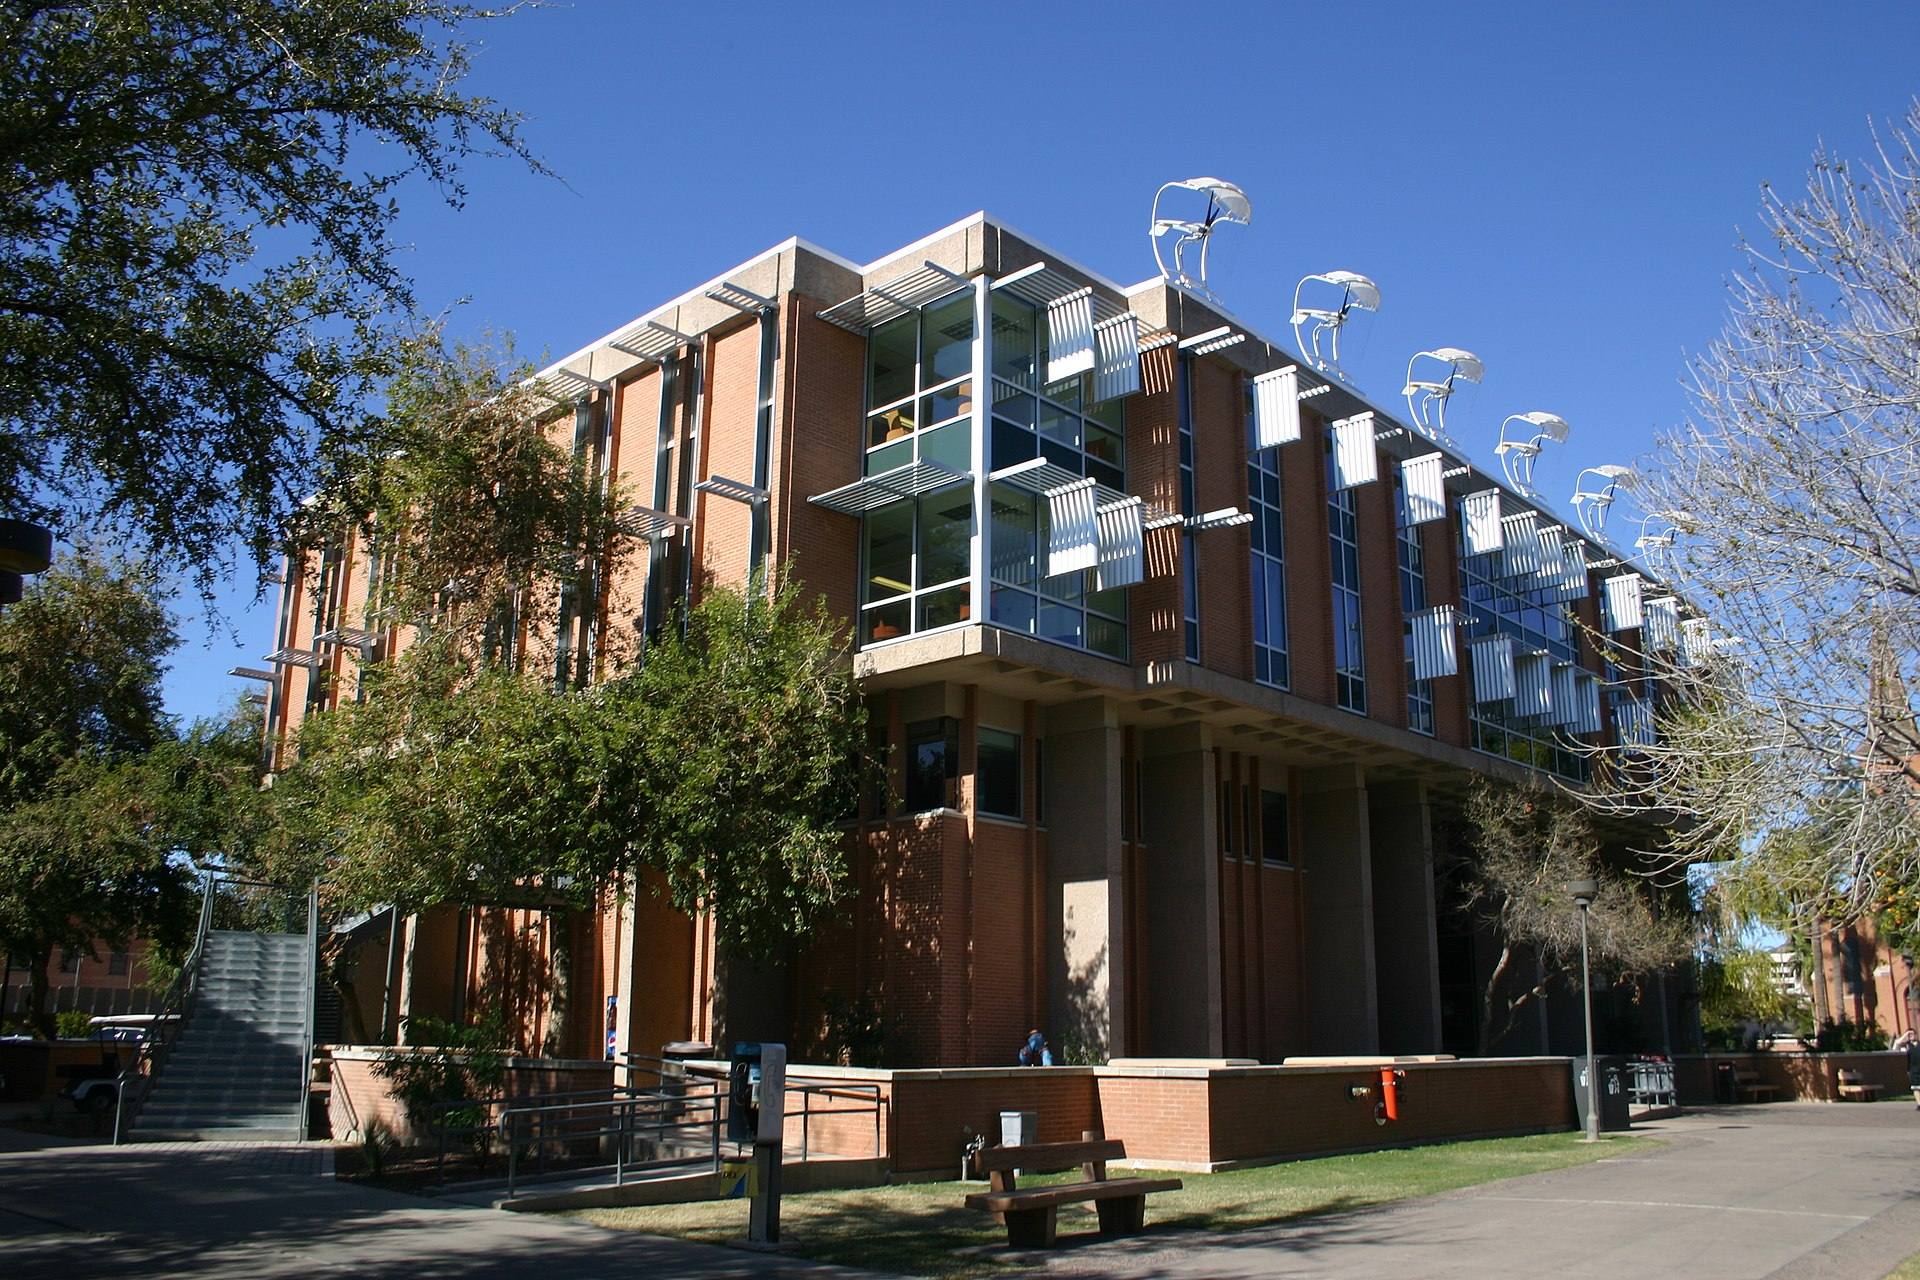 Asu Design School